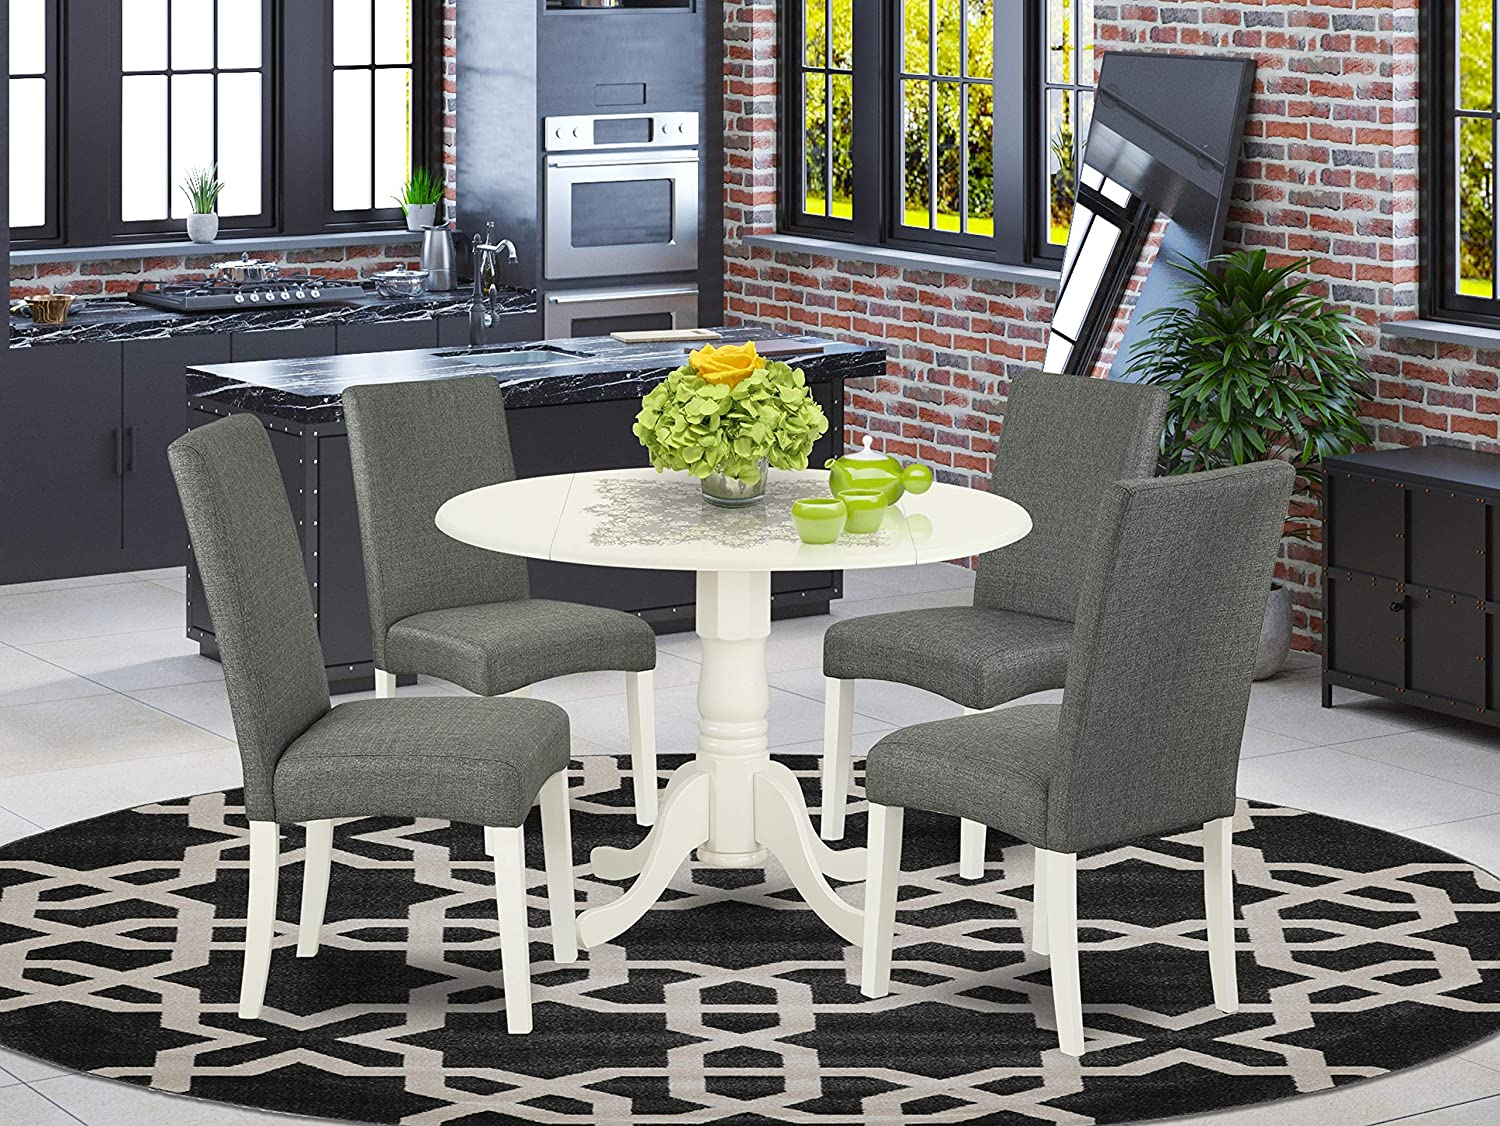 Home & Kitchen Table & Chair Sets Grey Linen Fabric Parsons Dining ...